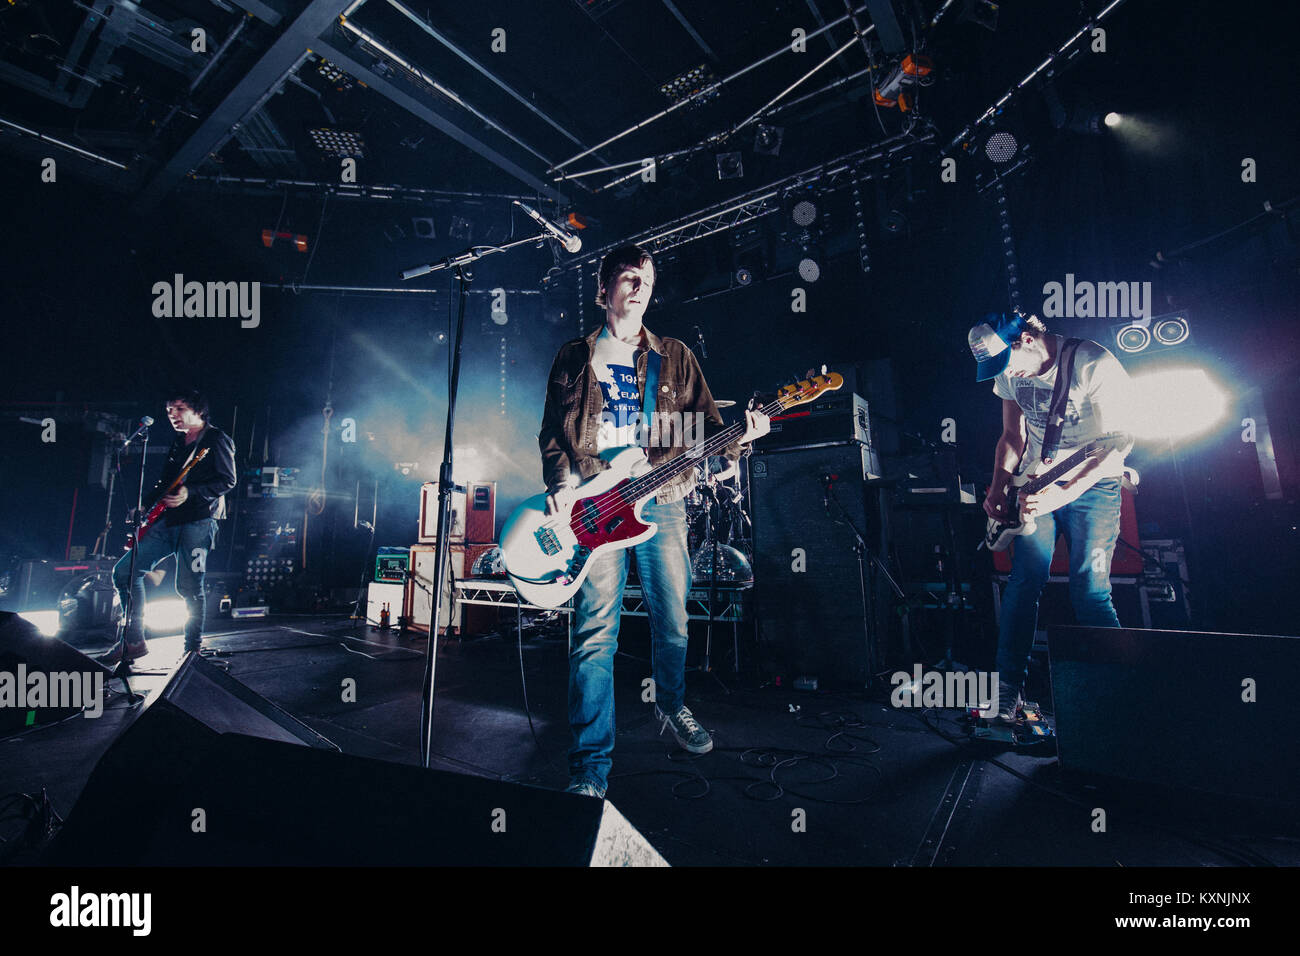 Cambridge, UK. 10th Jan, 2018. English indie rock band The Cribs perform live at the Cambridge Junction supporting Stock Photo